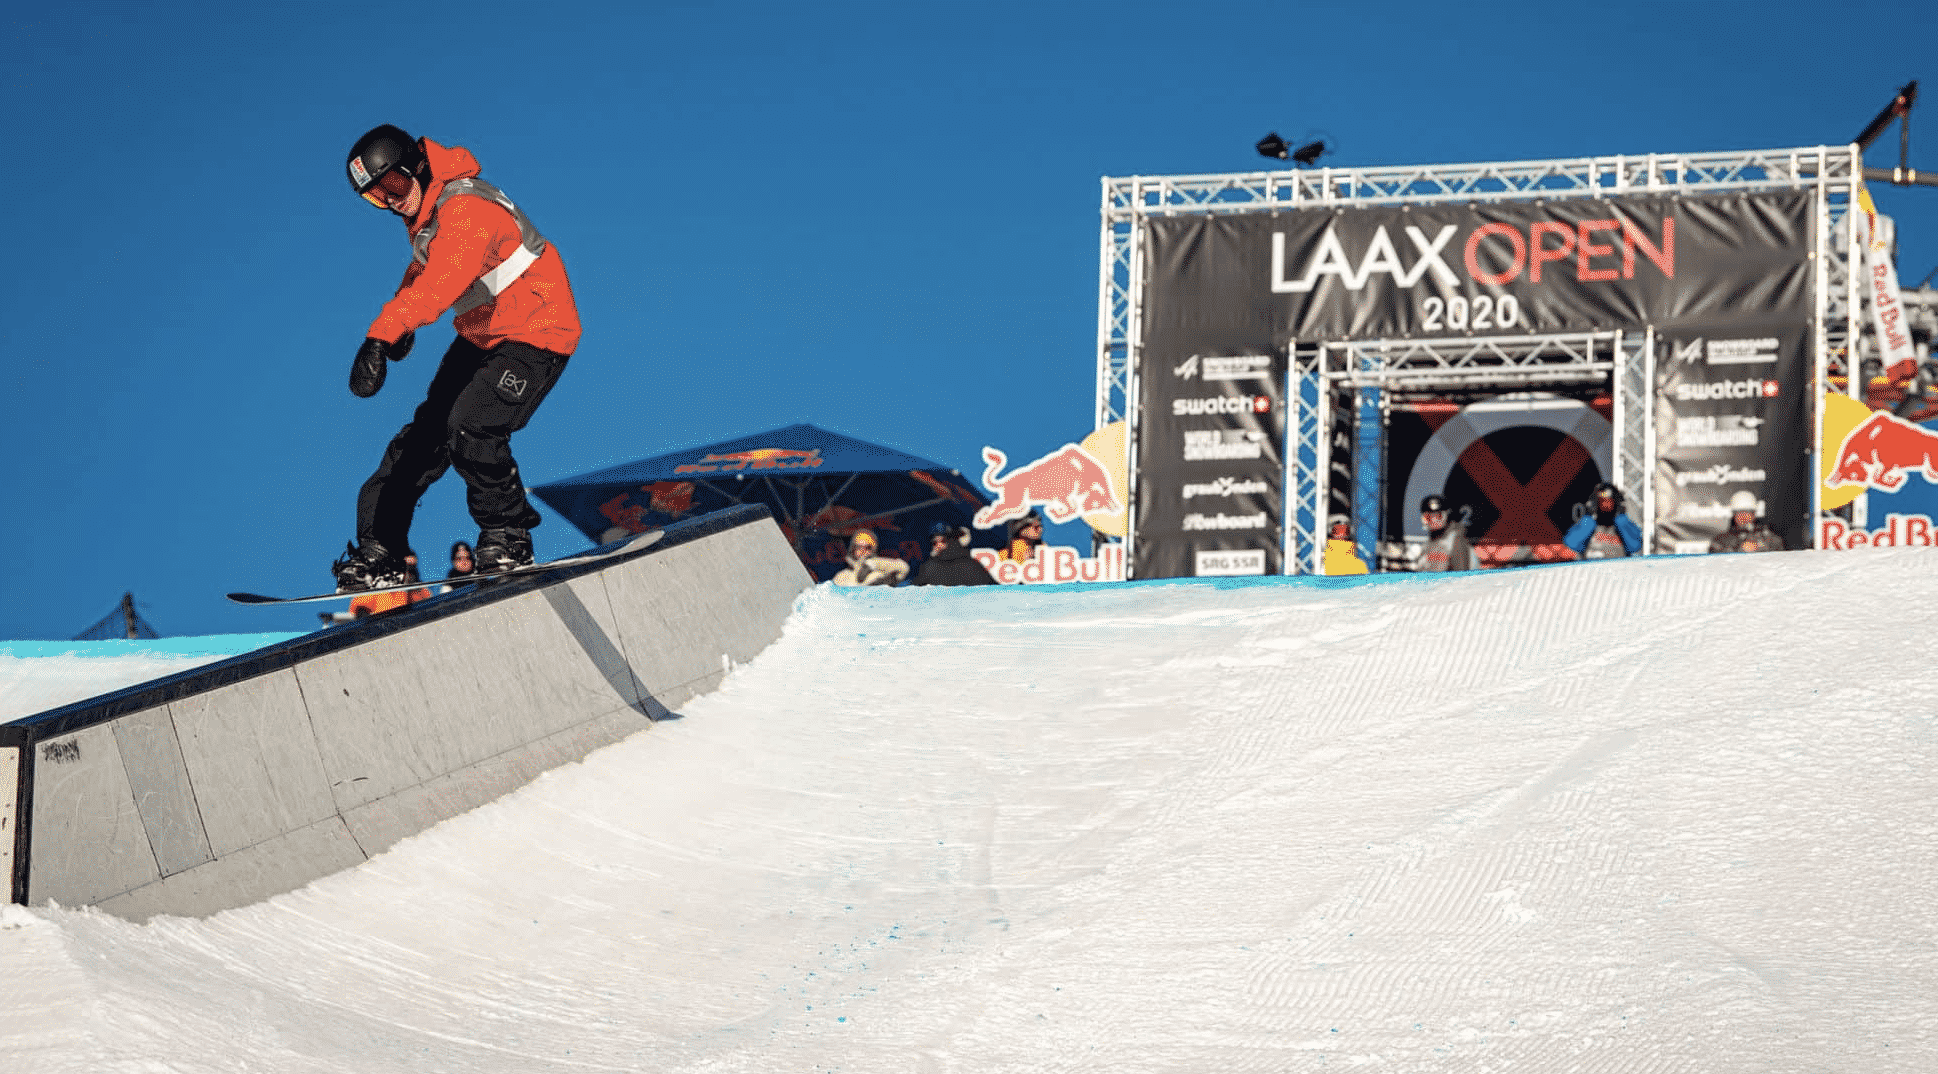 Red Gerard finishes as runner-up at Laax Open slopestyle competition